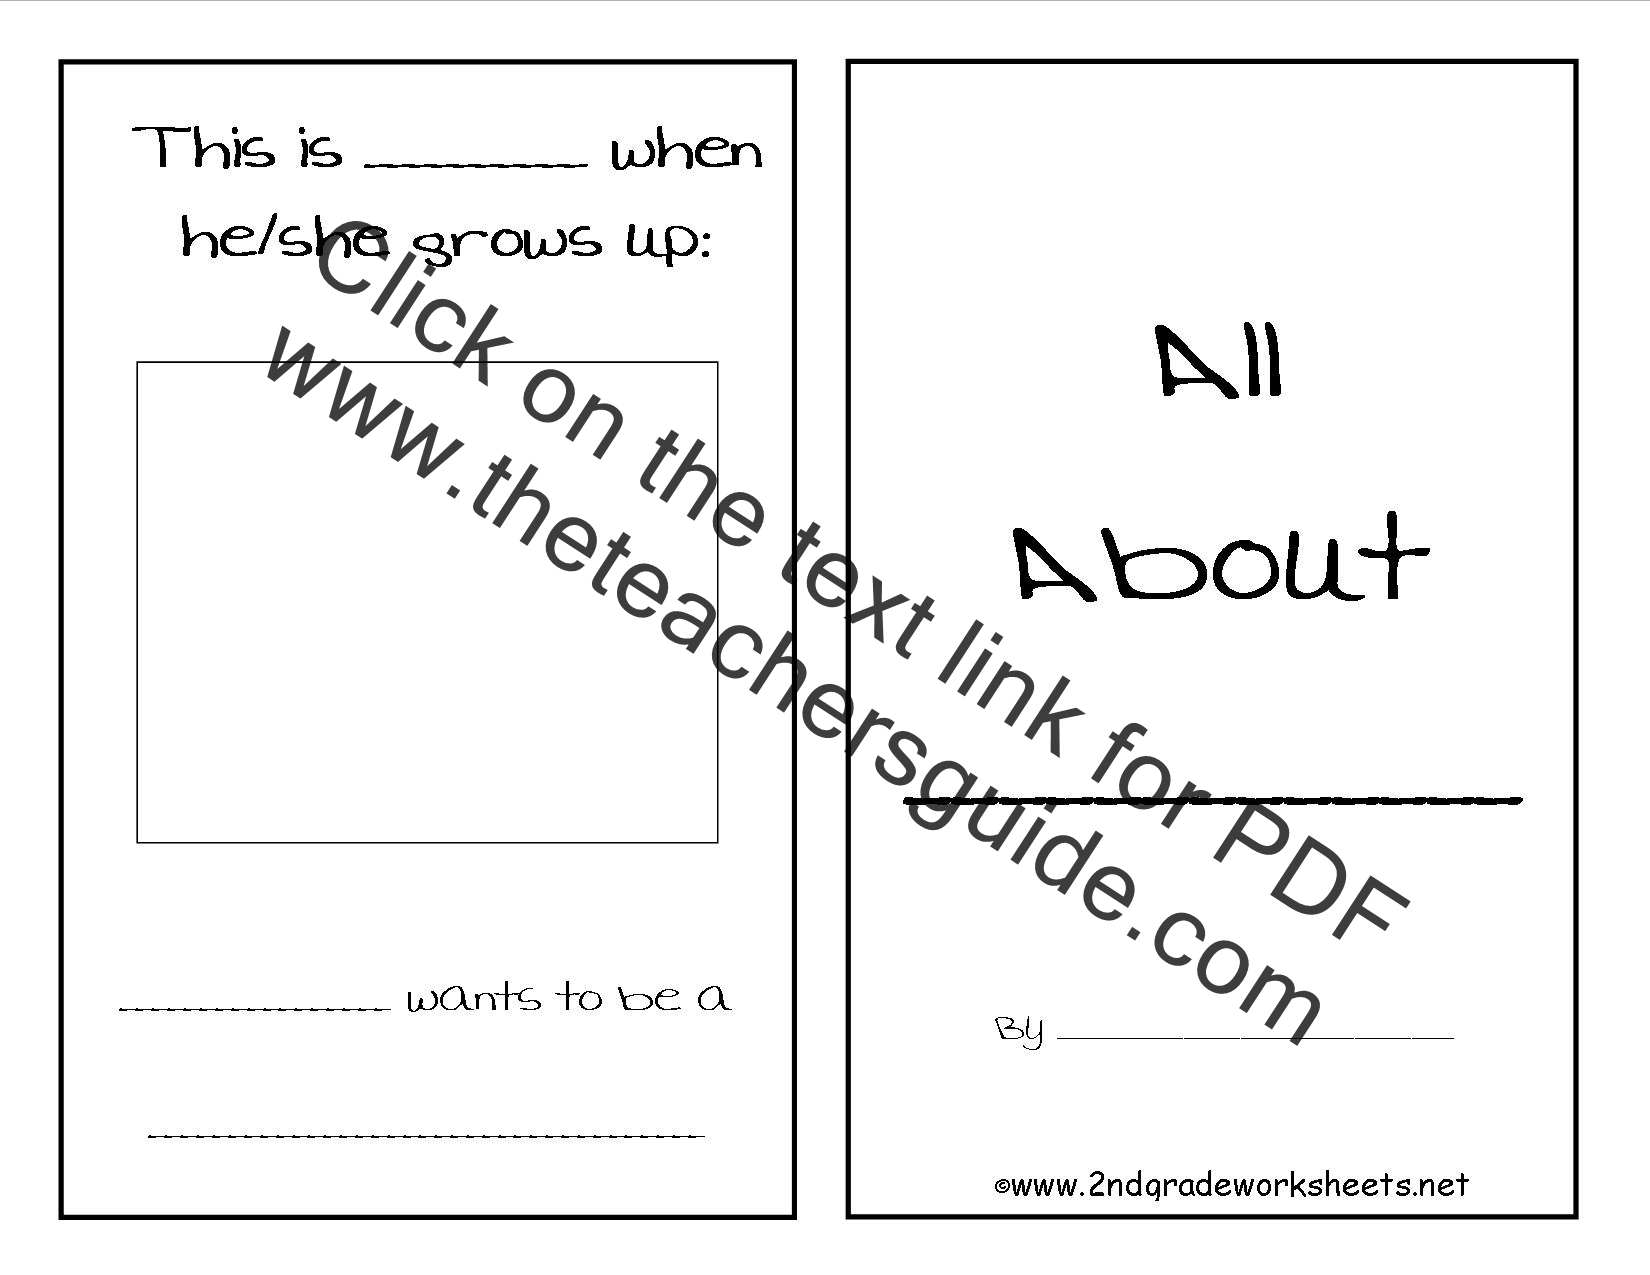 Free Back to School Worksheets and Printouts – Back to School Printable Worksheets